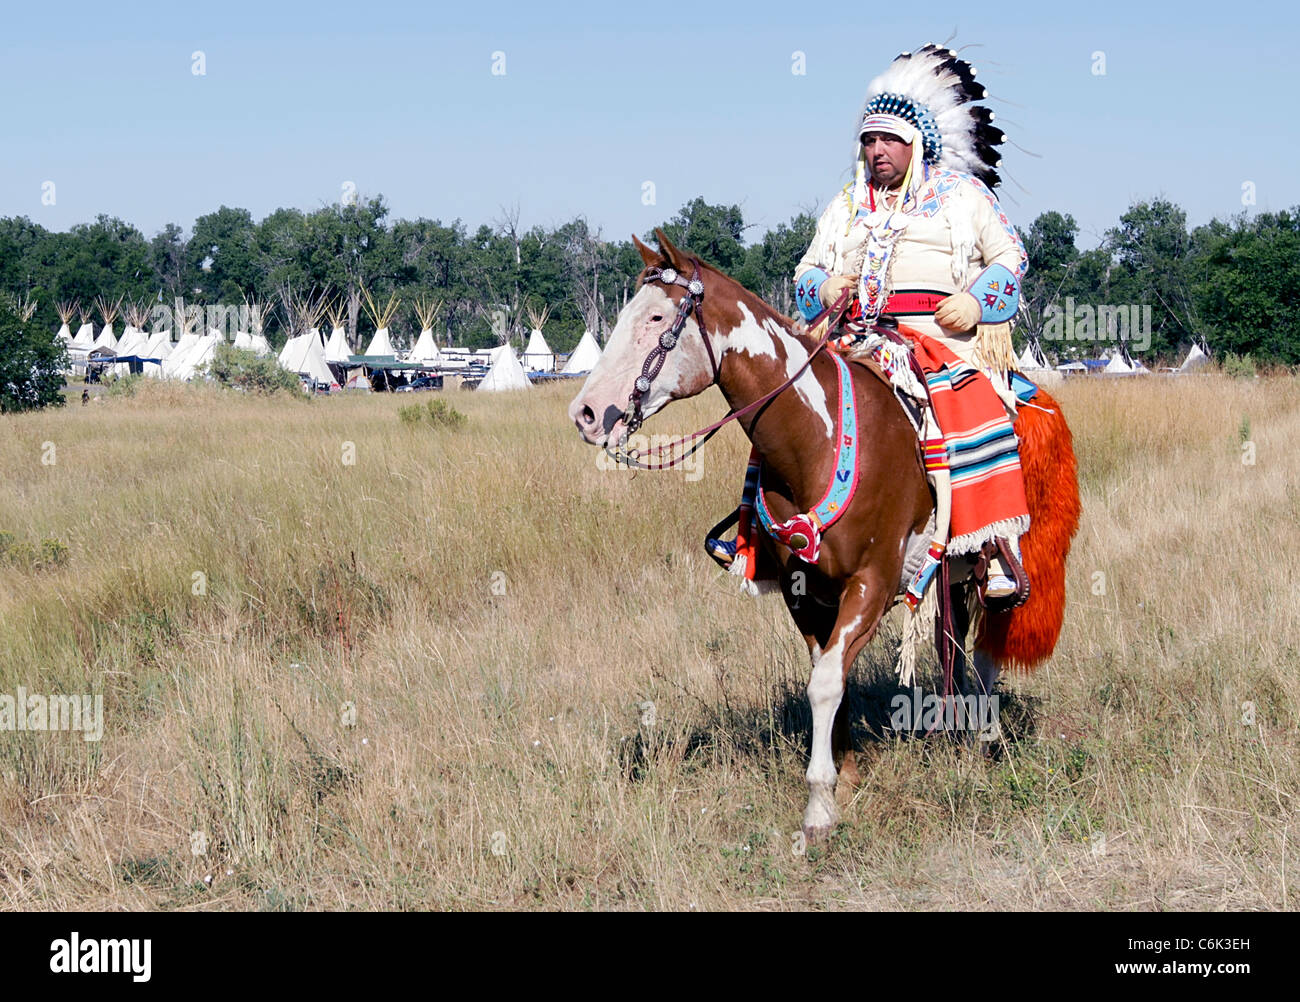 Indian chief in a parade held on the Crow Reservation, Montana, during the annual Crow Fair - Stock Image